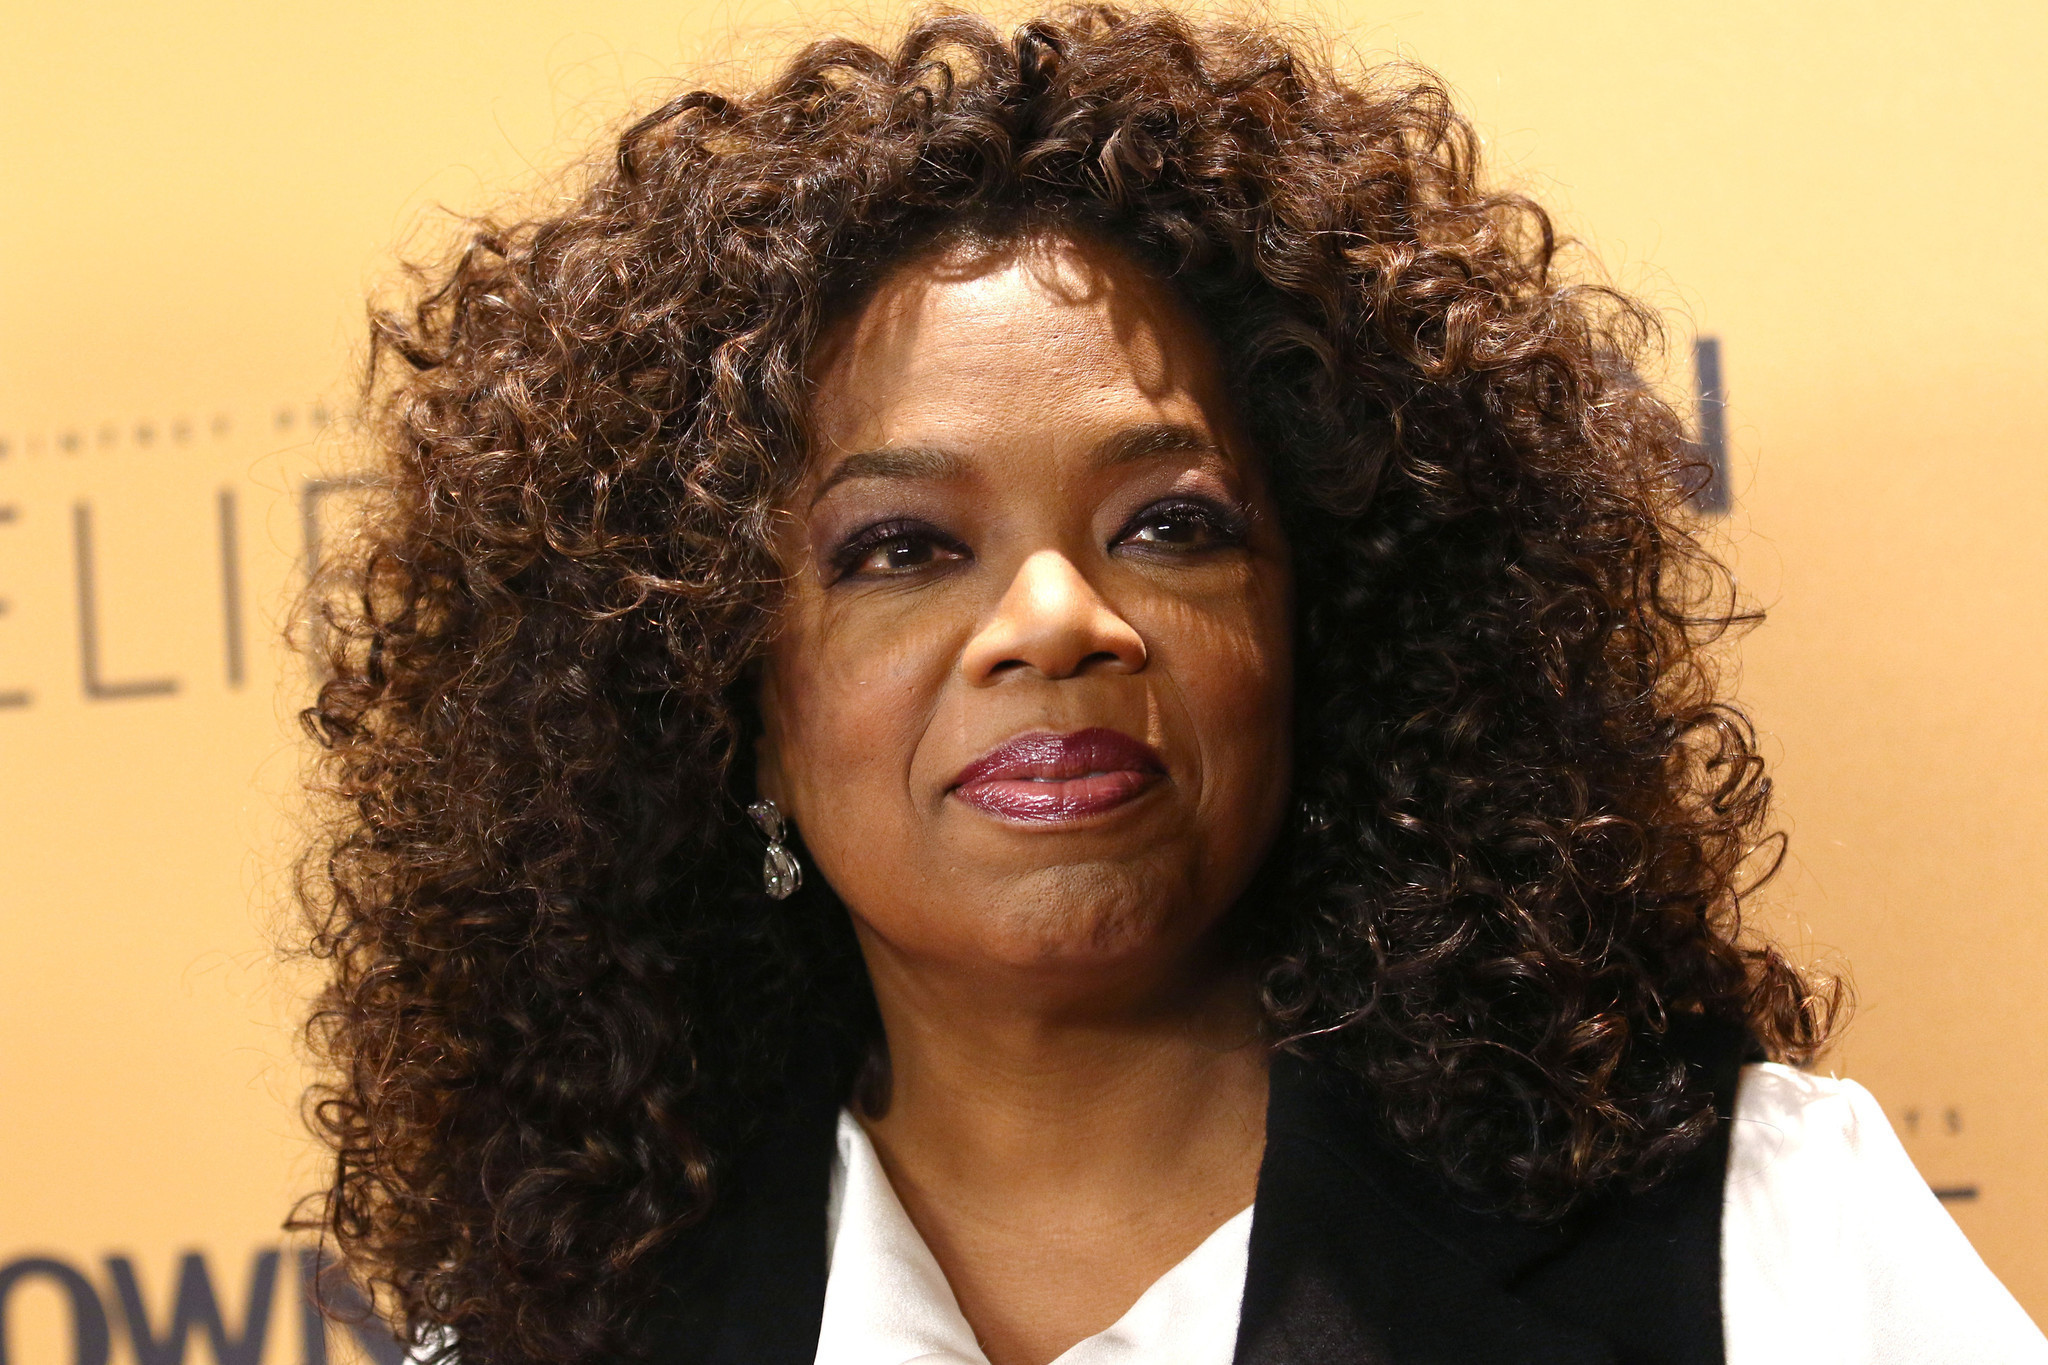 Oprah Winfrey Spotted In Baltimore As Henrietta Lacks Movie Bal Hbo Film Oprah Winfrey Film Baltimore Next Week  Bal Oprah Winfrey Sightings In Baltimore  Story